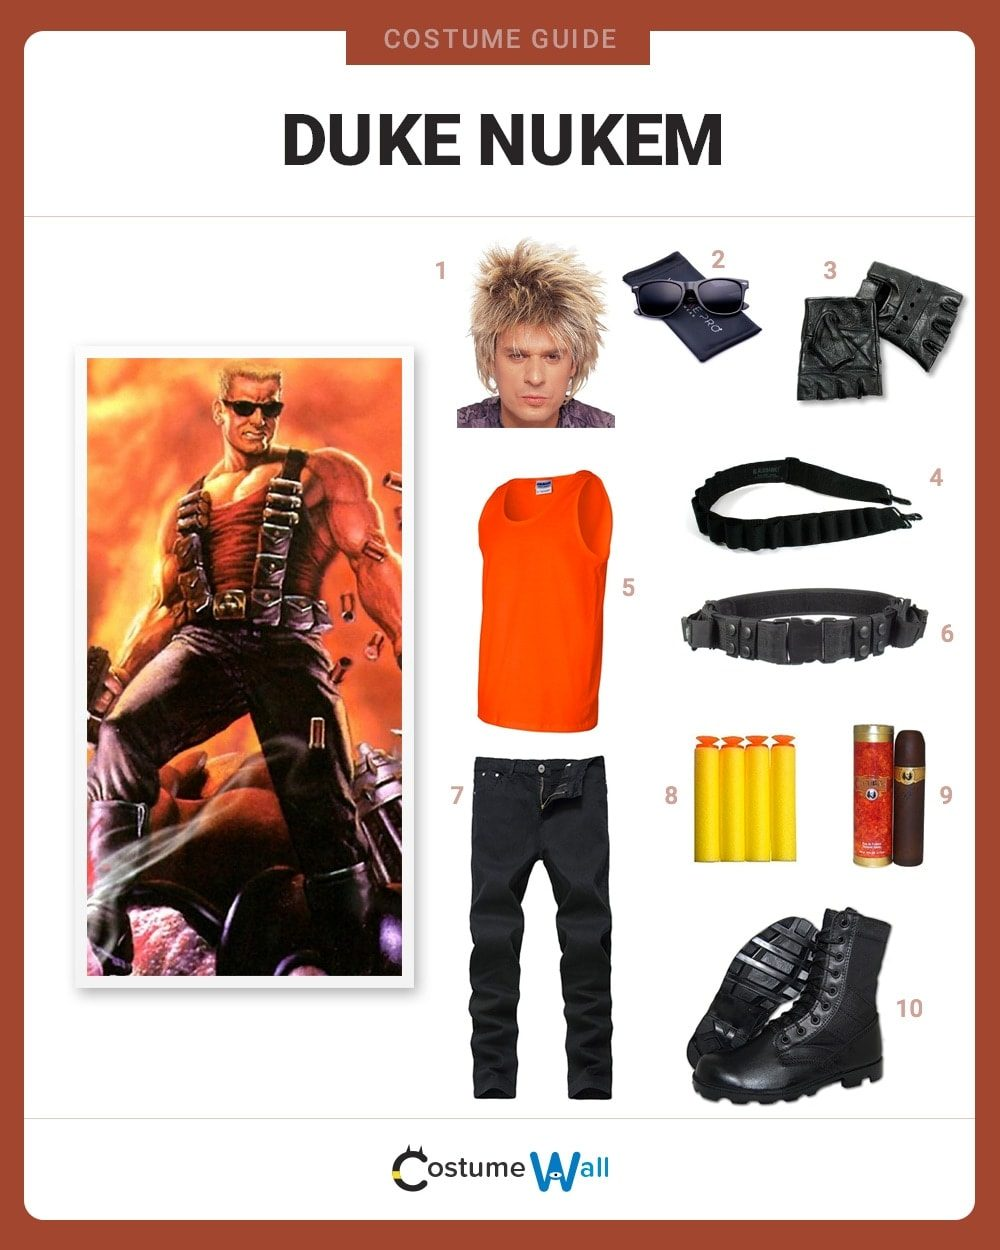 Duke Nukem Costume Guide